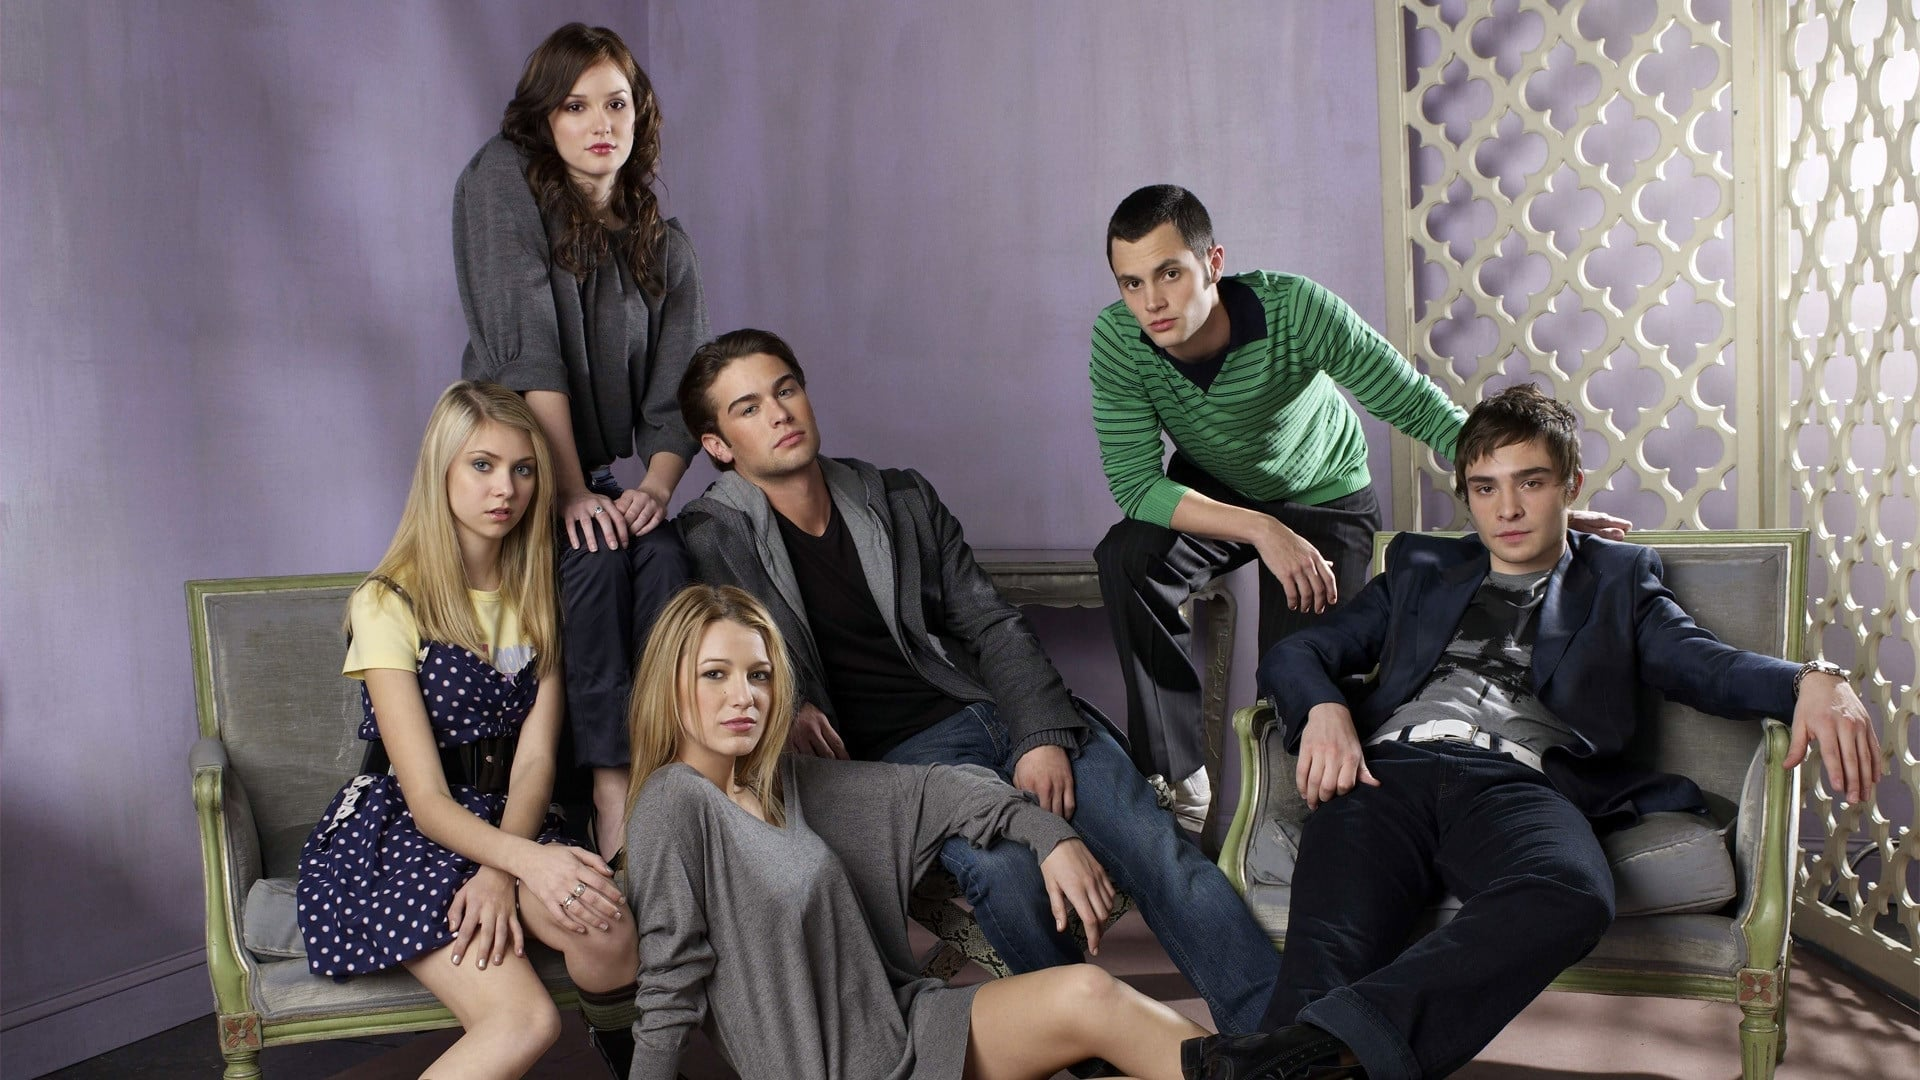 Gossip Girl Poster from the 2000s